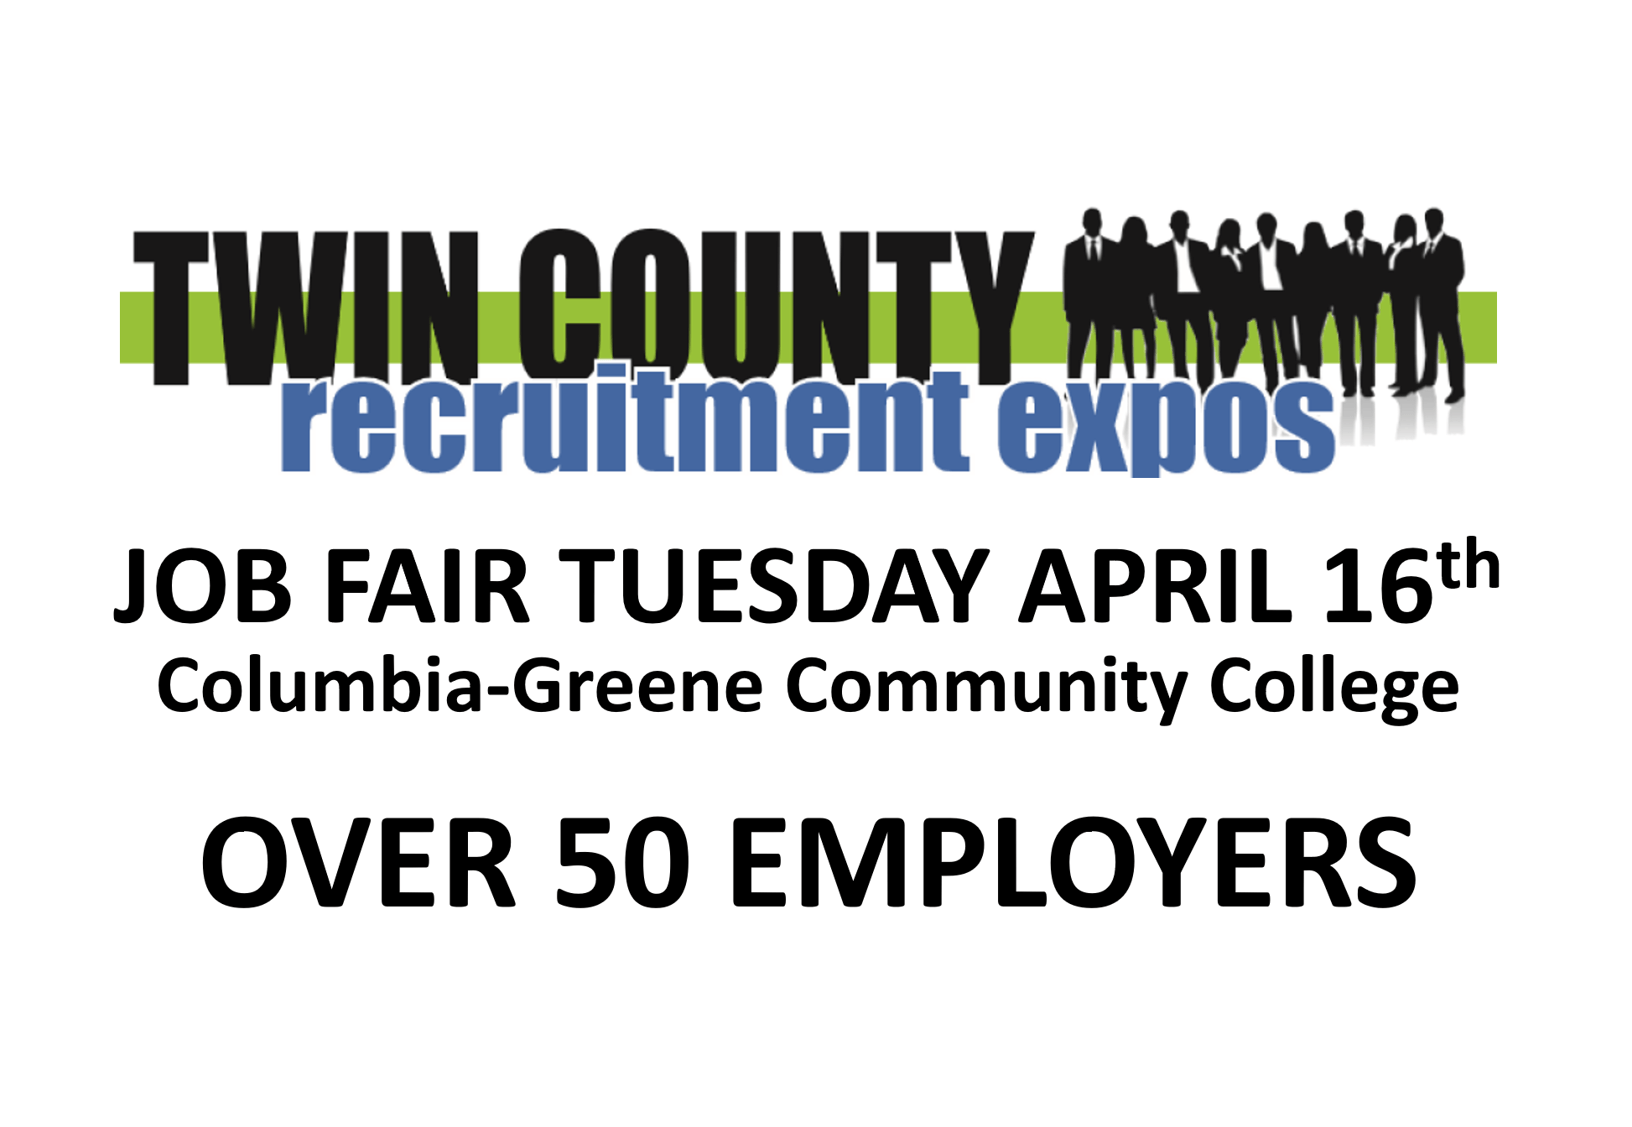 Job Fair at C-GCC Tuesday April 16th